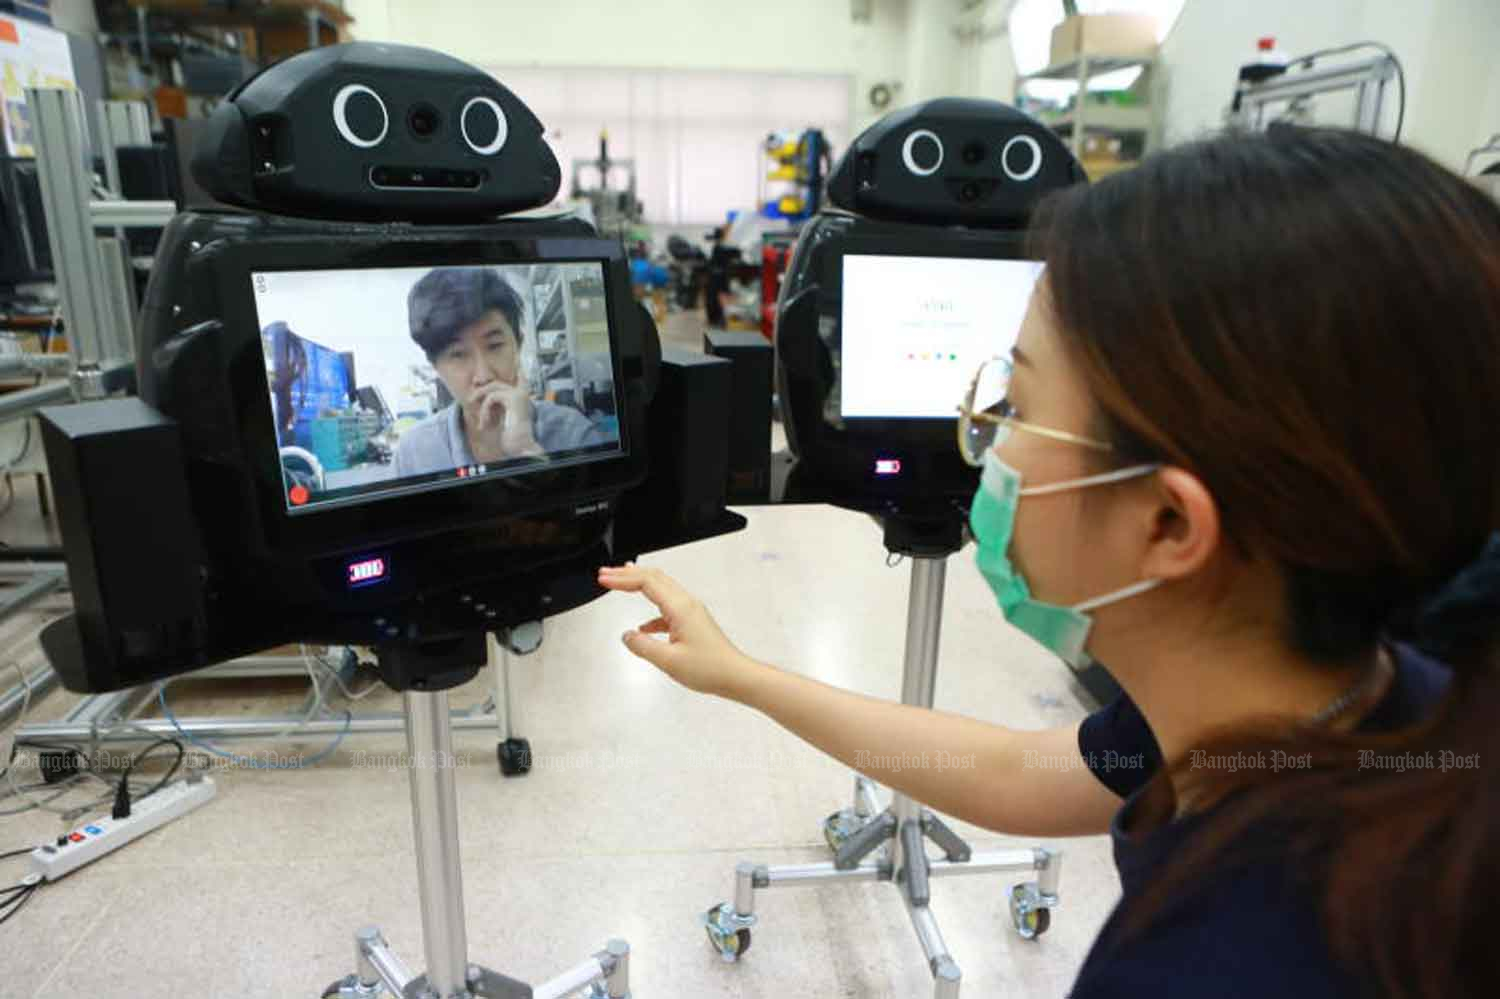 'Ninja', a telemedicine robot developed by a Chulalongkorn University research team, is tested at the university's engineering faculty. The robot will be used by medical personnel to lend to Covid-19 patients by providing real-time information from their bedside. (Photo: Somchai Poomlard)